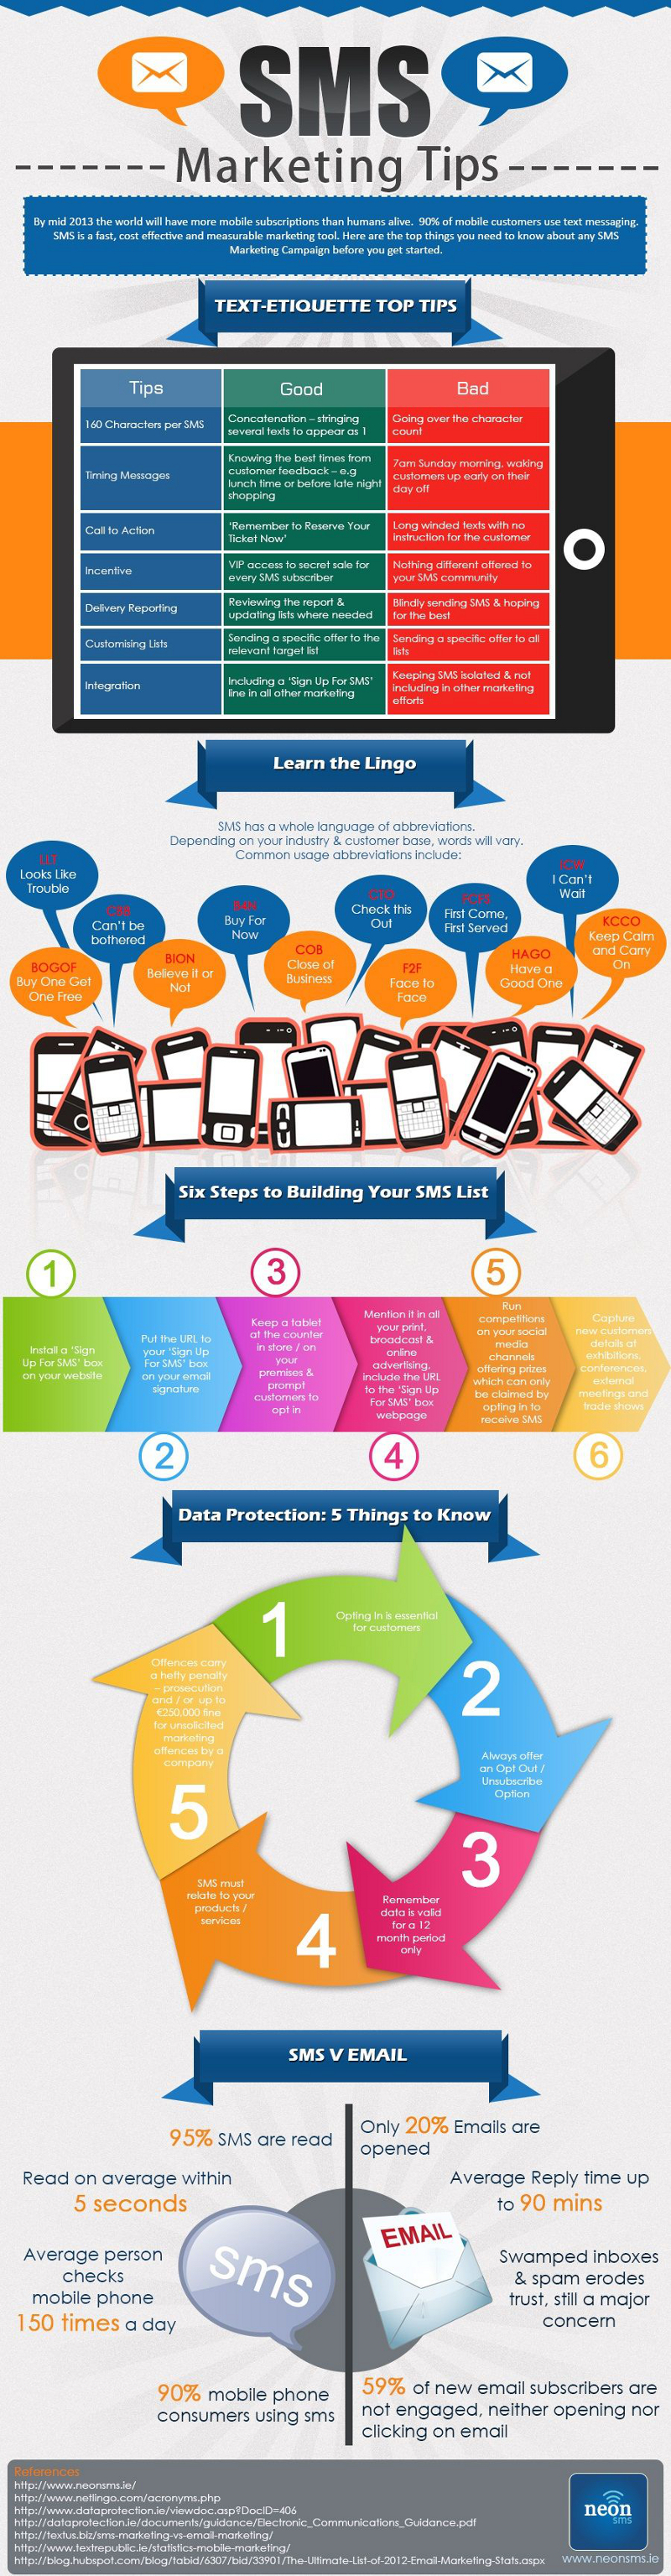 Marketing Tips with SMS